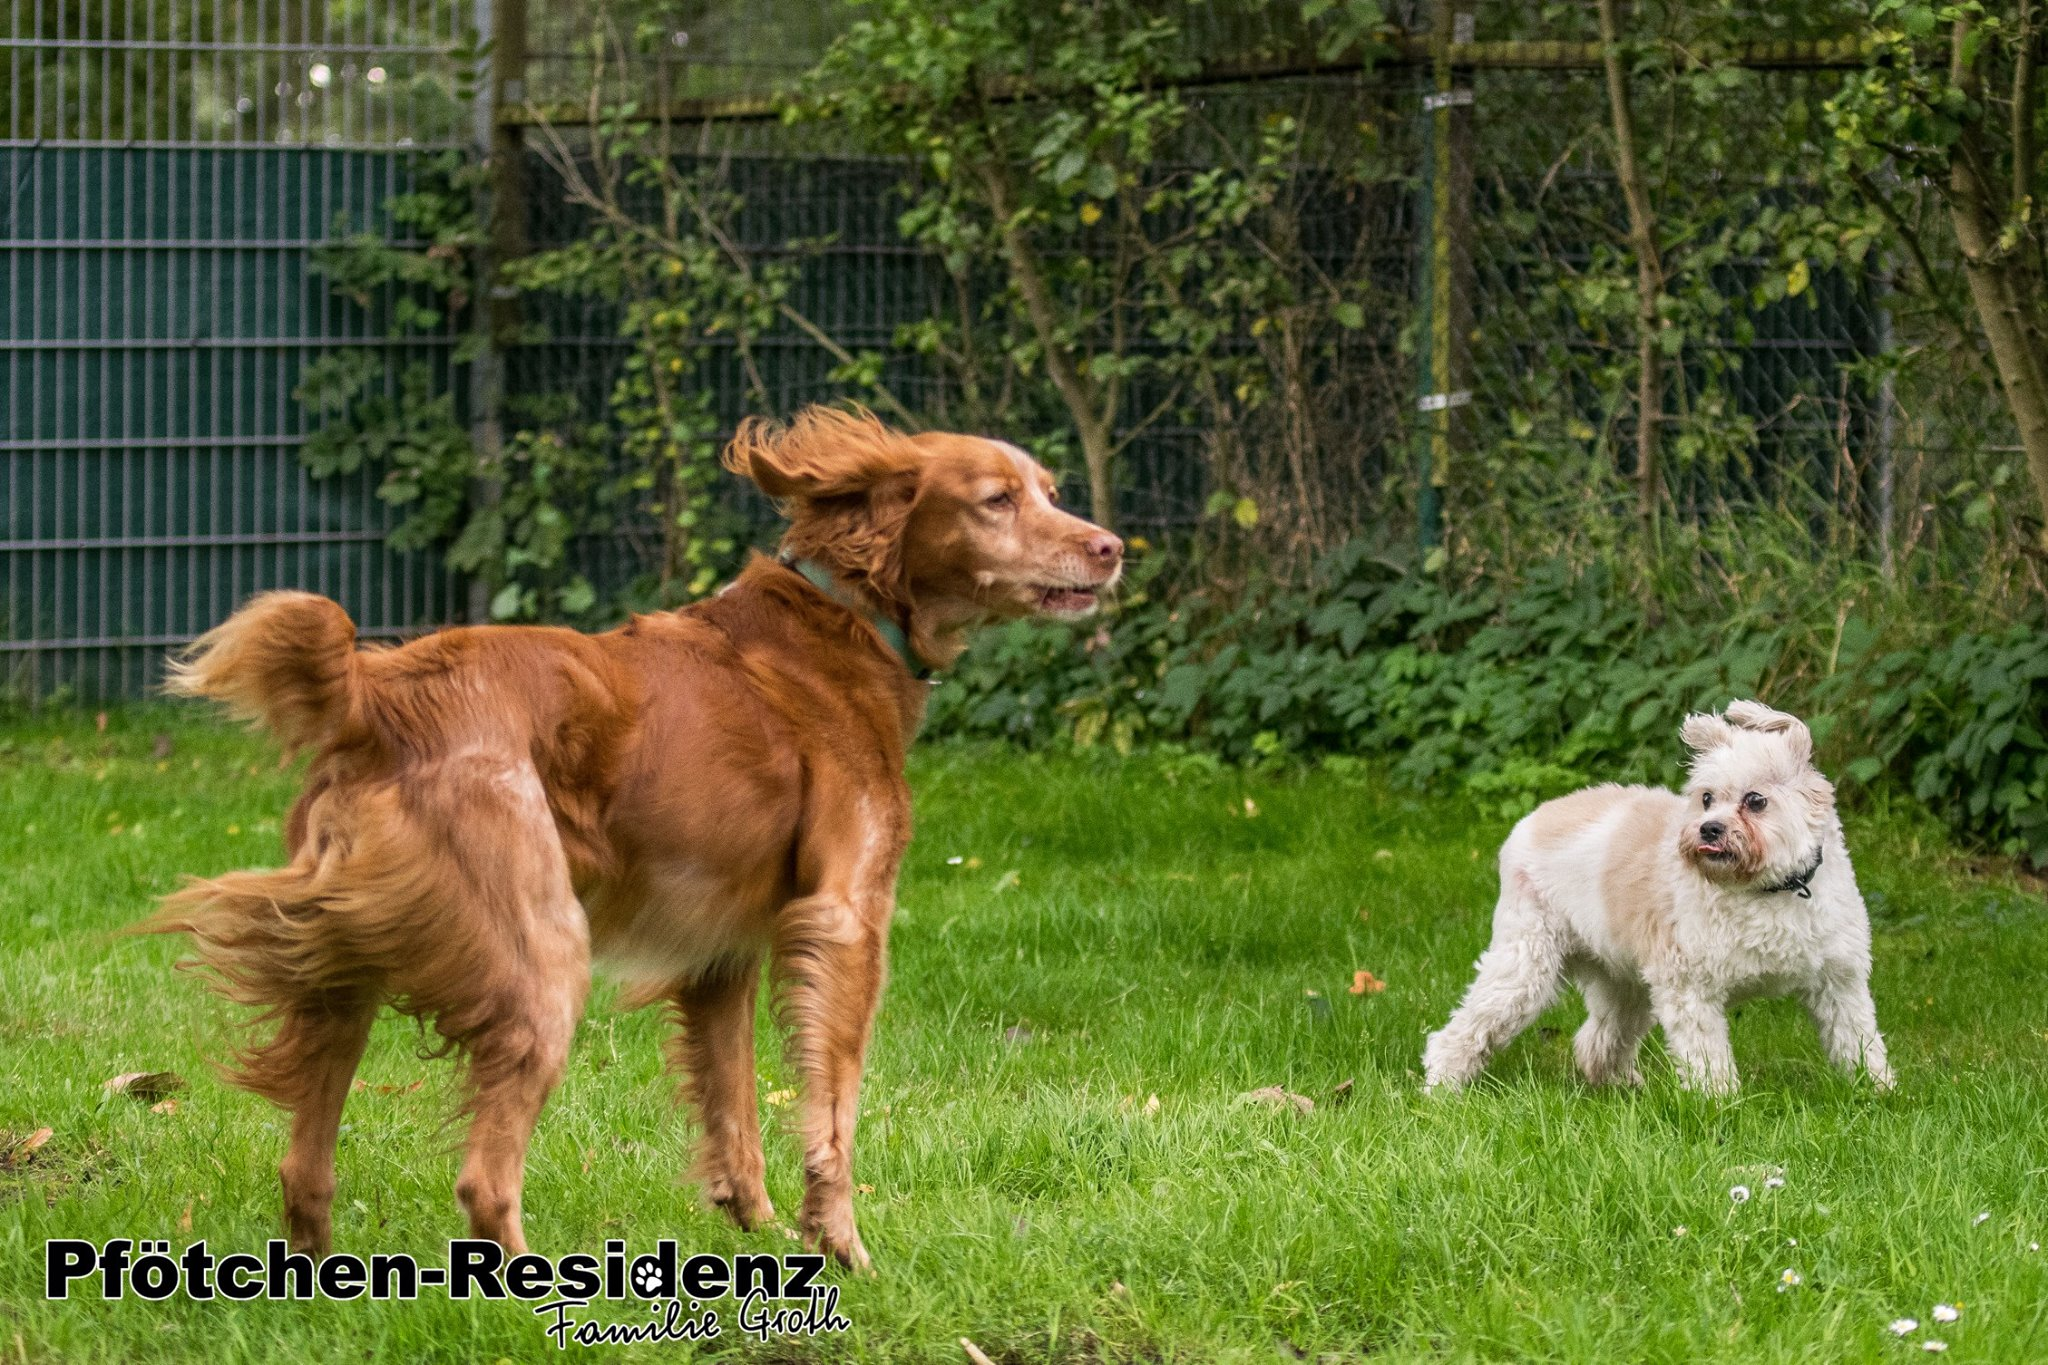 hundepension-hannover-15.jpg